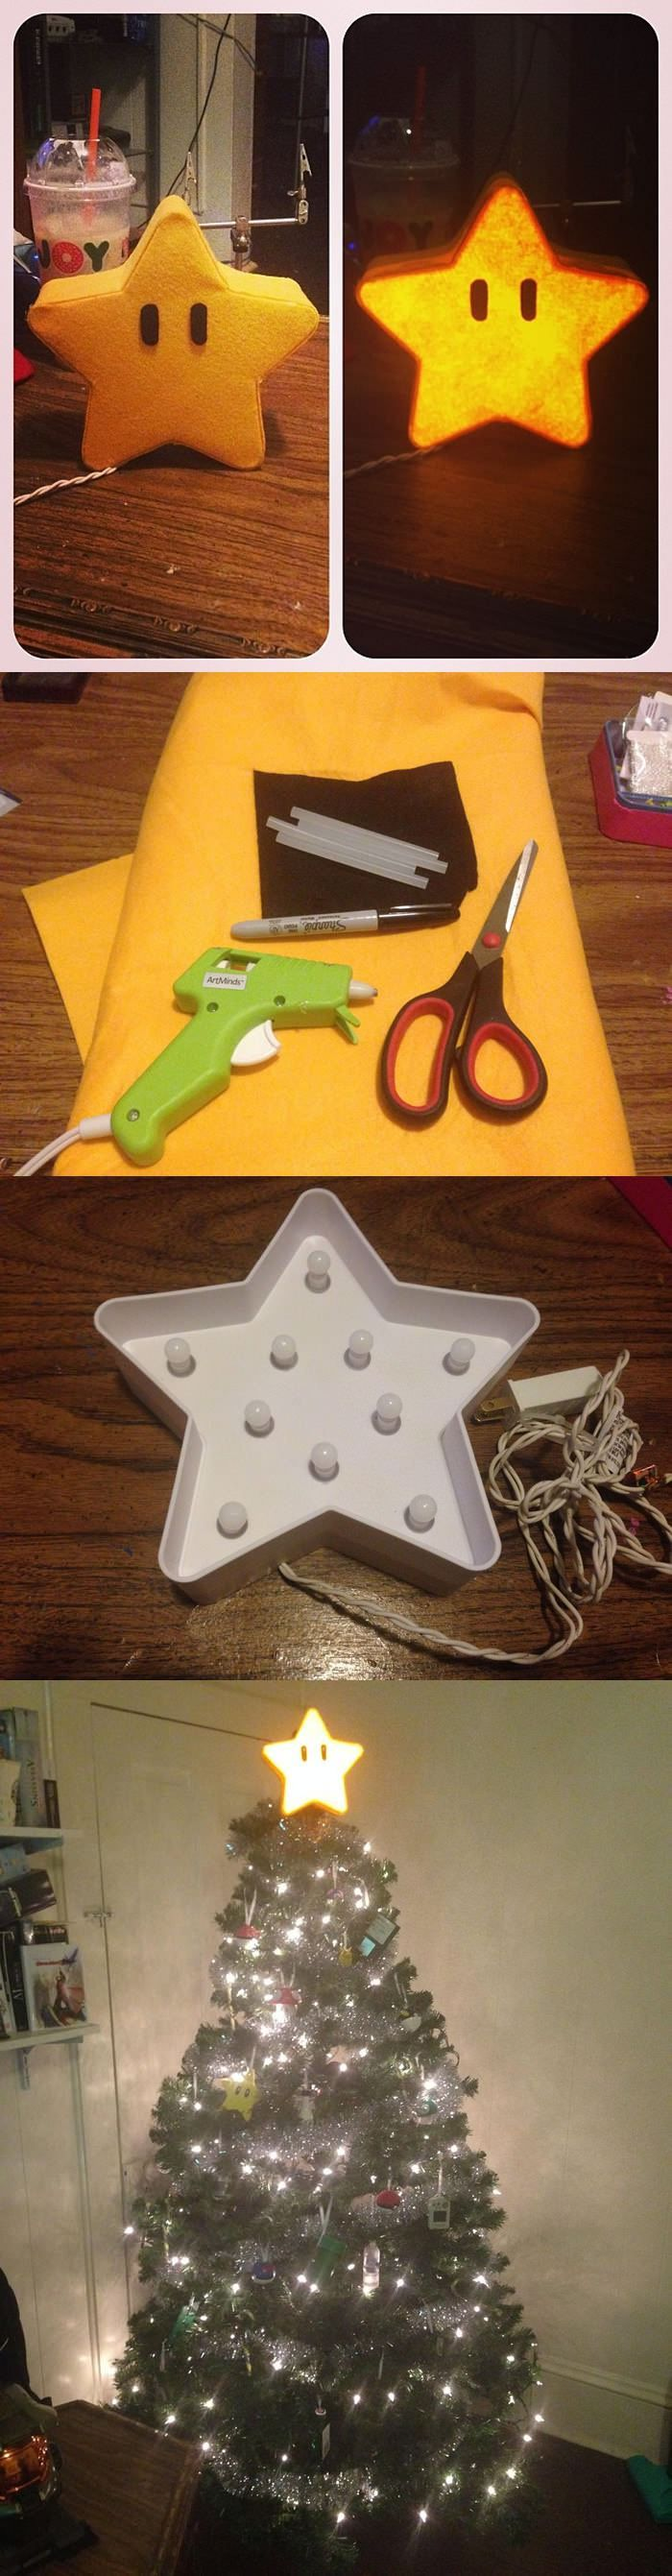 I repurposed a lamp from Target to make a Mario star for the top of my Christmas tree.